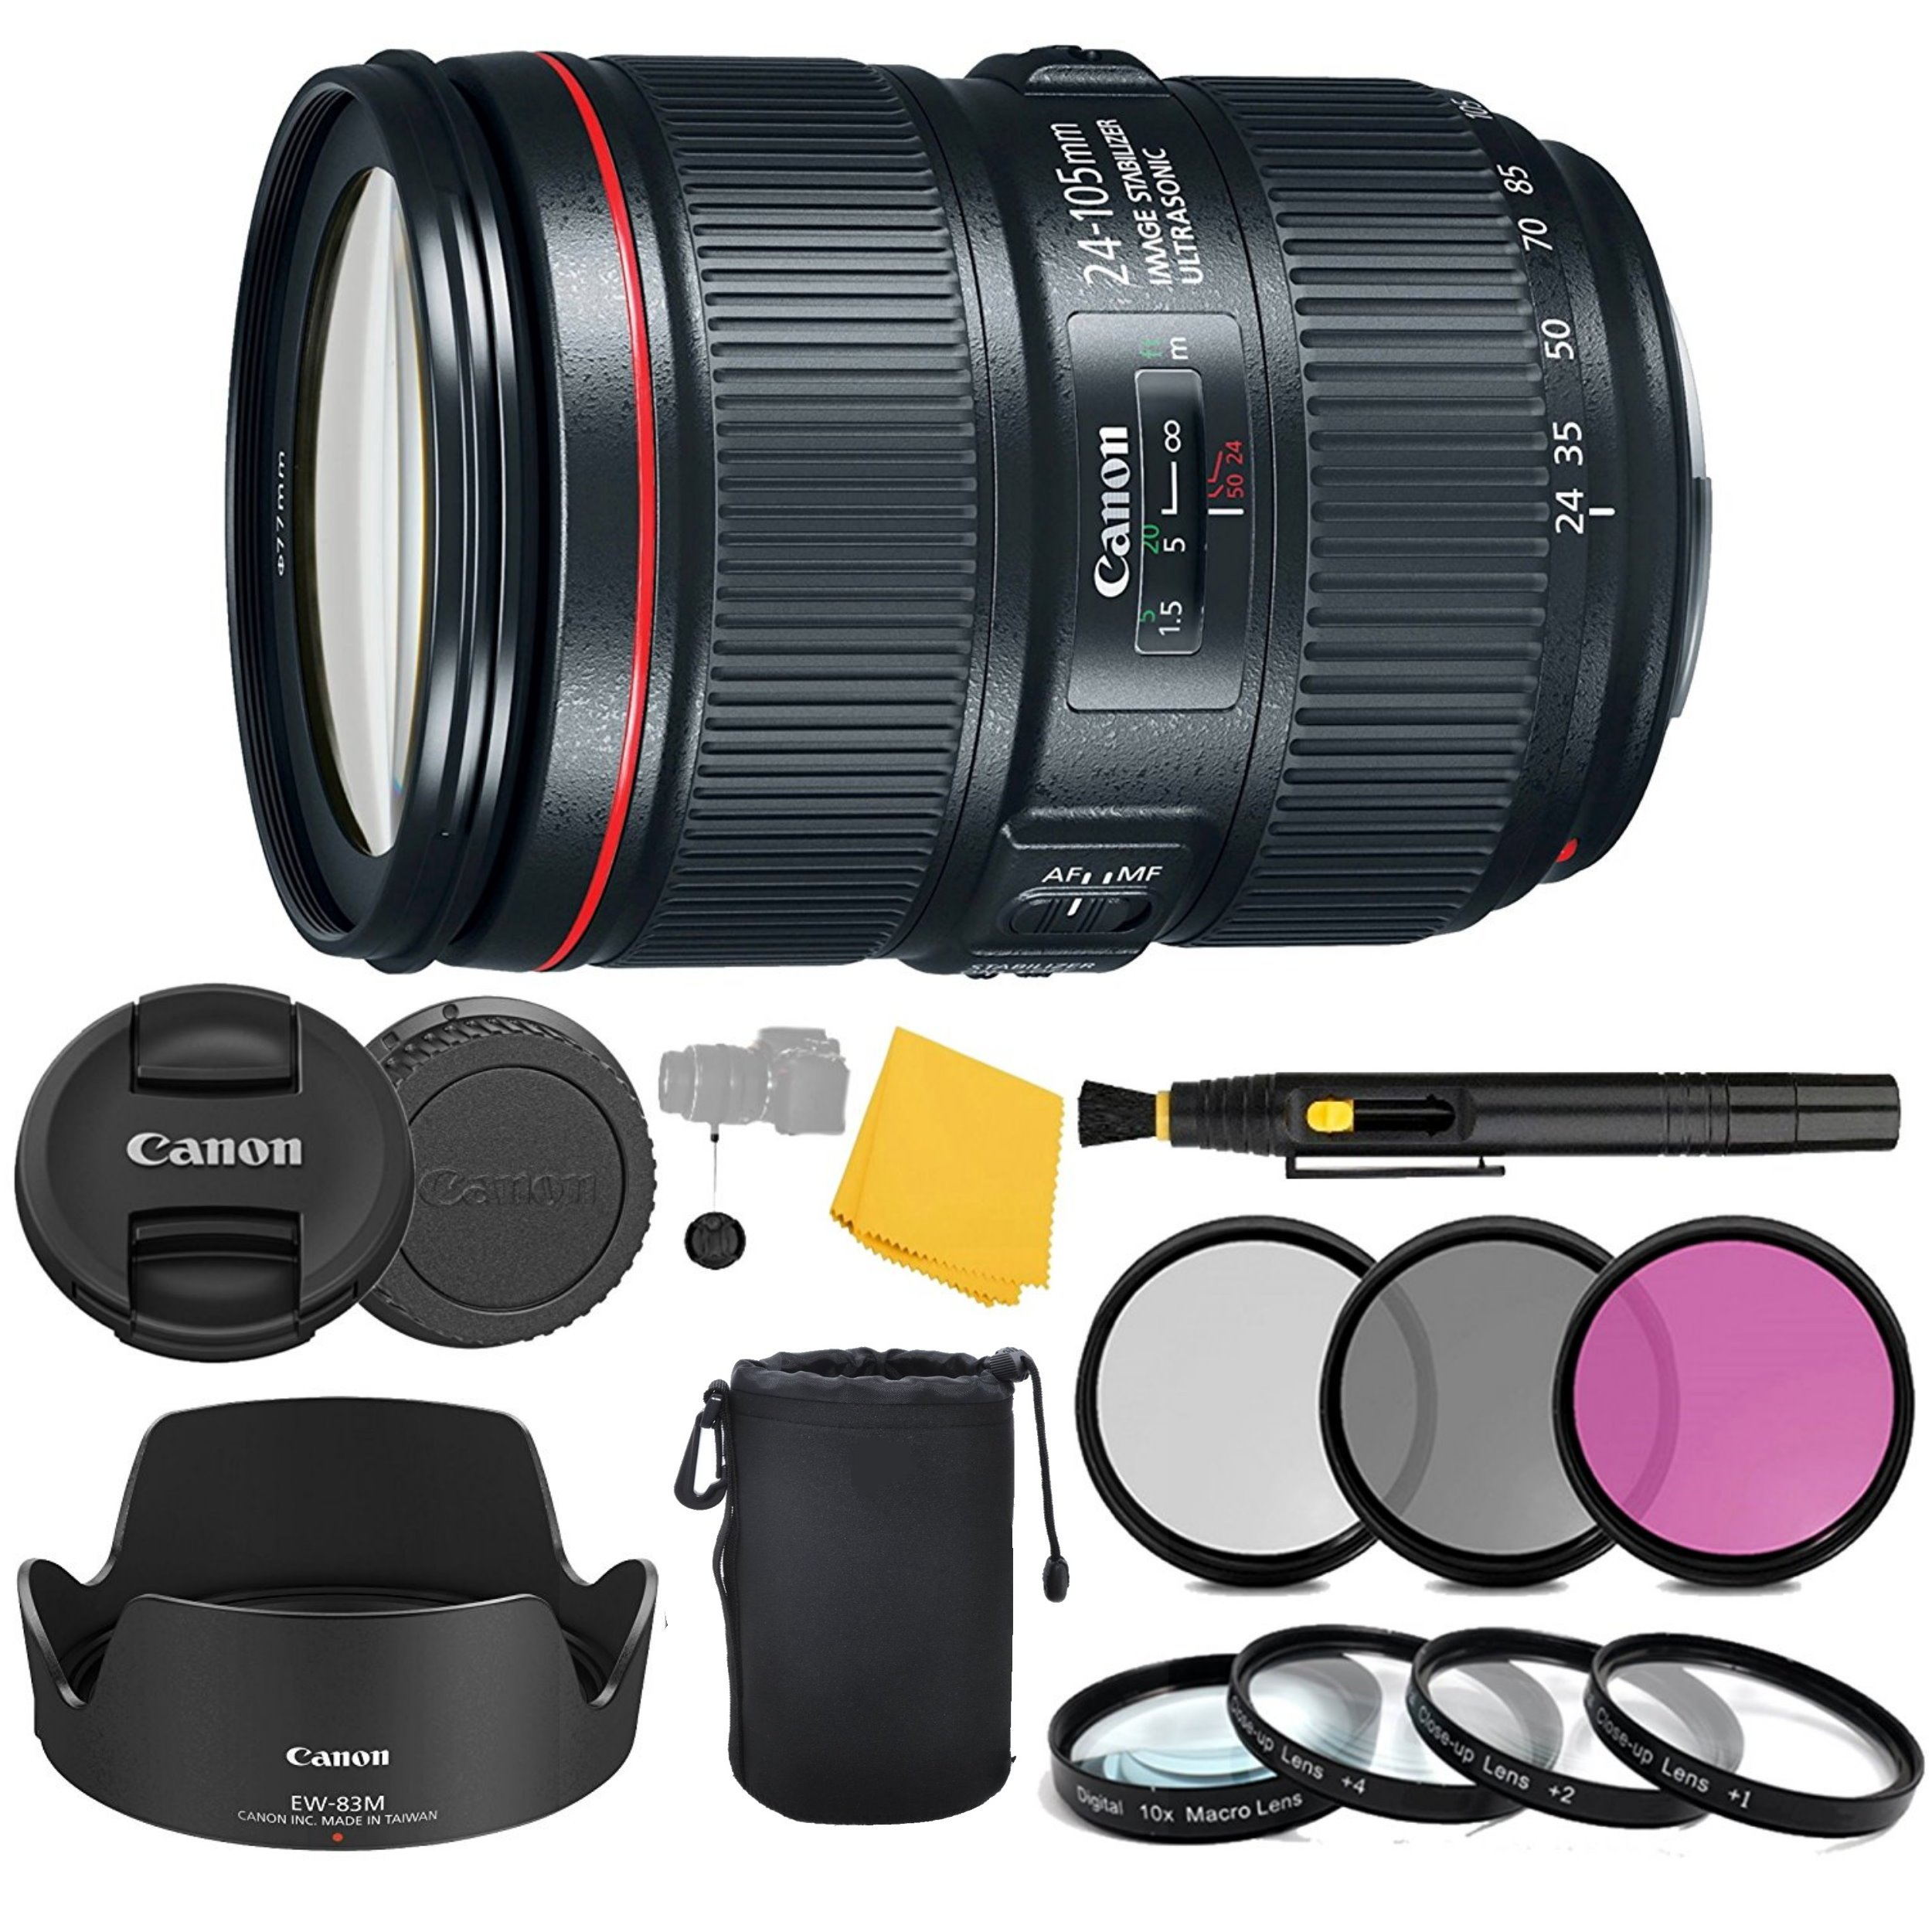 Canon EF 24-105mm f/4L IS II USM Lens + 3 Piece Filter Set + 4 Piece Close Up Macro Filters + Lens Cleaning Pen + Pro Accessory Bundle - 24-105mm II IS: Ultrasonics Motor - International Version by AOM